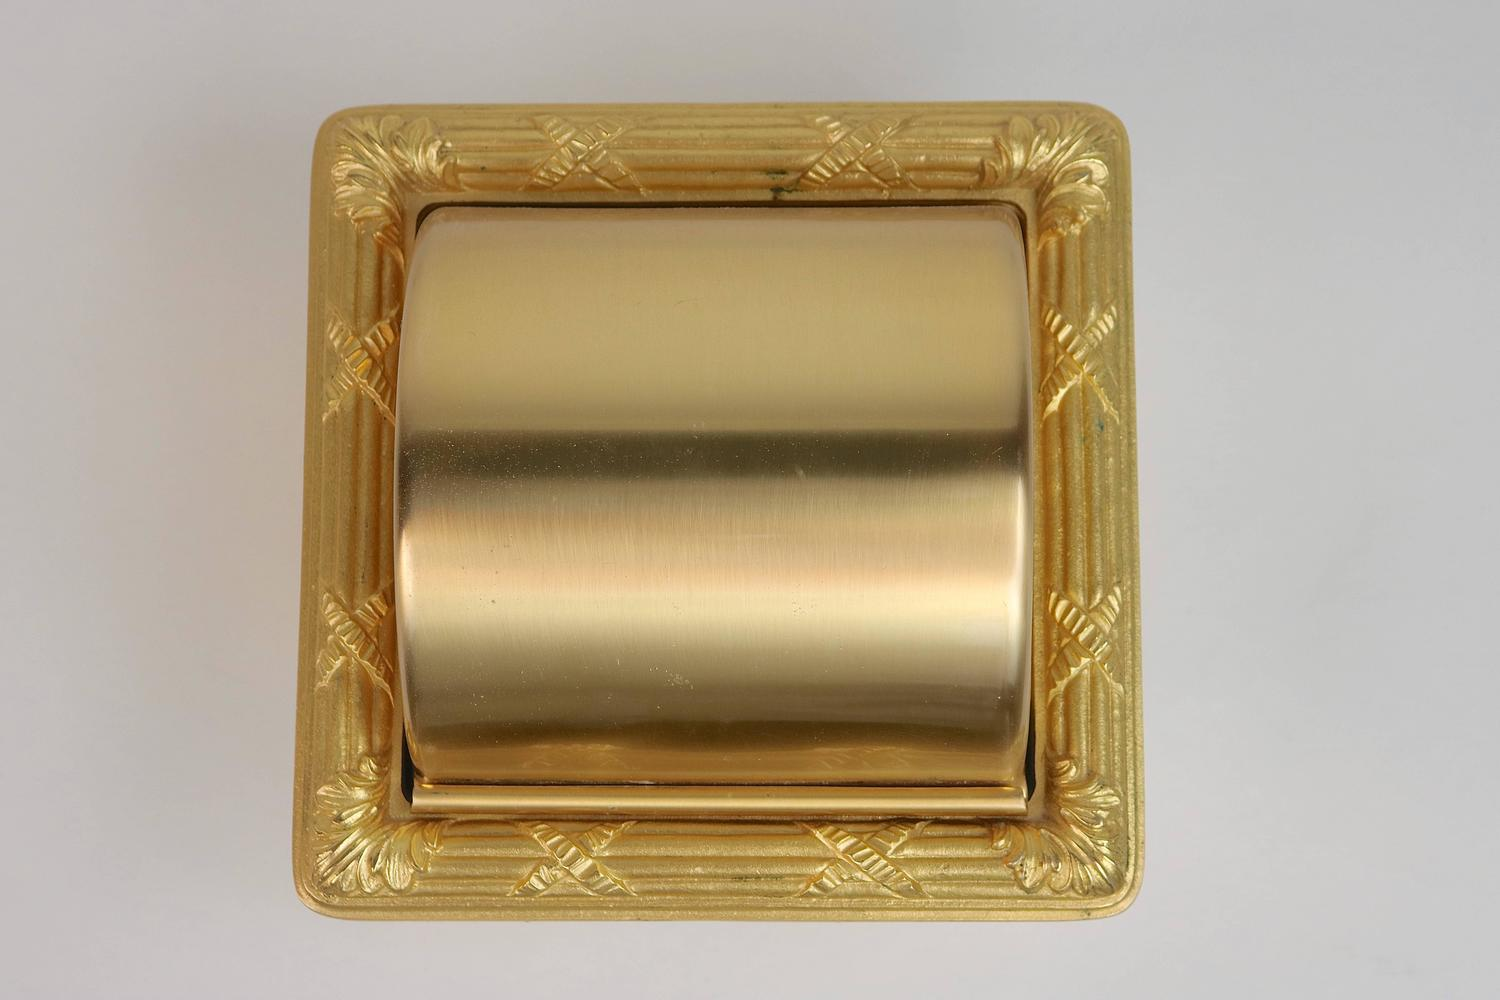 Luxe Sherle Wagner 22 Karat Gold Plated Recessed Toilet